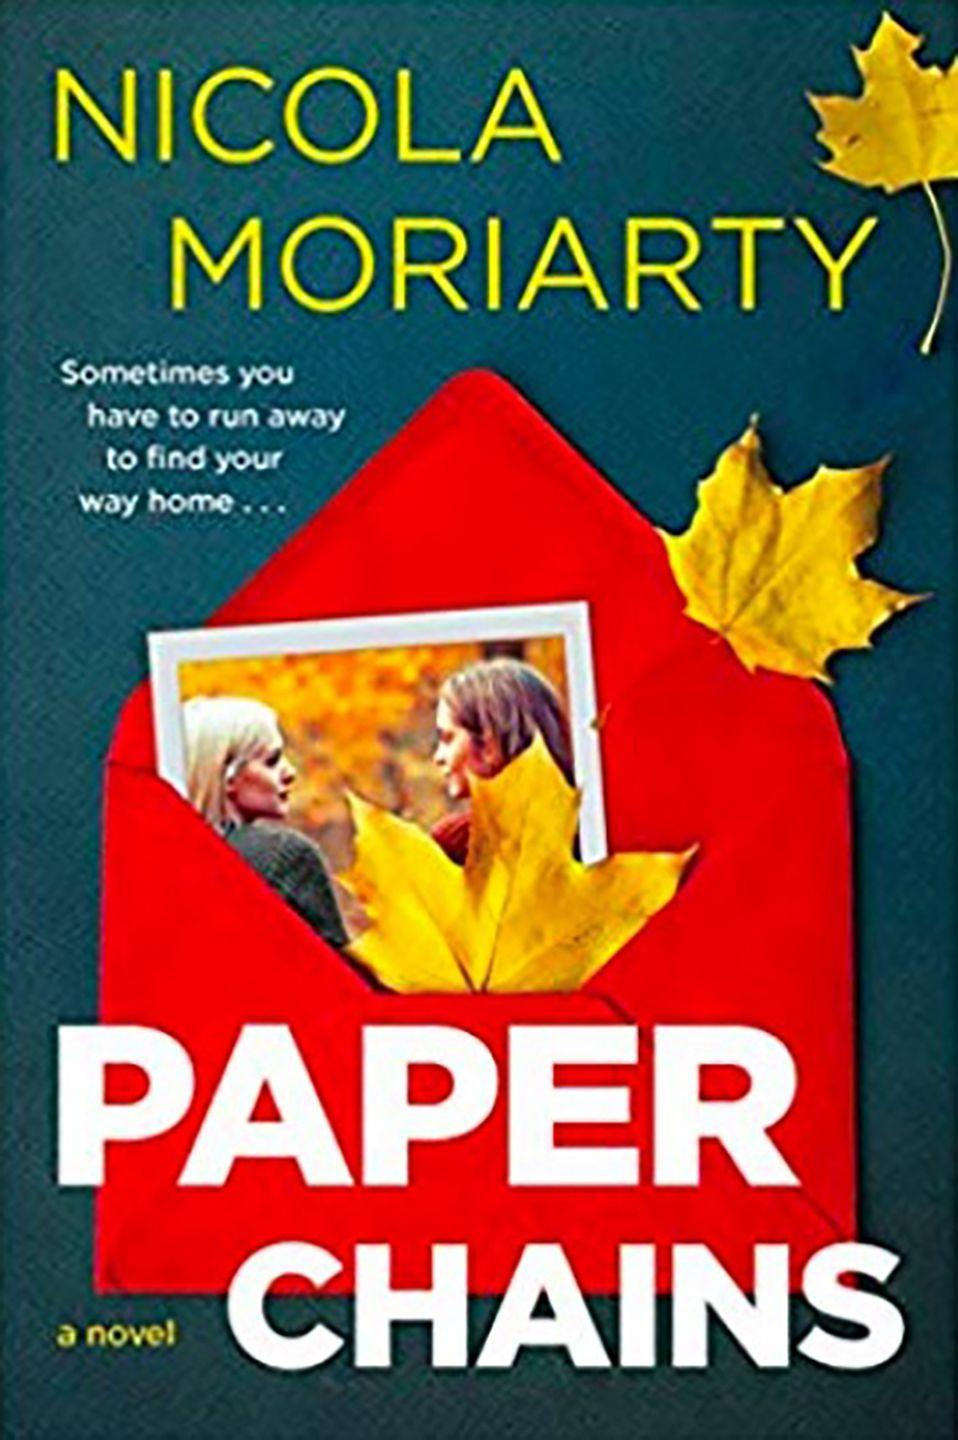 """<p><a class=""""link rapid-noclick-resp"""" href=""""https://www.amazon.co.uk/Paper-Chains-Nicola-Moriarty/dp/0062413546/ref=sr_1_1?keywords=Paper+Chain+by+Nicola+Moriarty&qid=1567162081&s=gateway&sr=8-1&tag=hearstuk-yahoo-21&ascsubtag=%5Bartid%7C1919.g.15922606%5Bsrc%7Cyahoo-uk"""" rel=""""nofollow noopener"""" target=""""_blank"""" data-ylk=""""slk:SHOP NOW"""">SHOP NOW</a> £13.09, Amazon</p><p>Since moving to London from Australia, Hannah has been running (literally and figuratively) from everything. It's only when she meets India, a fellow Australian bursting with confidence and charm, that she starts to feel at home. But both women are hiding secrets - one of which is currently making its way across Europe in an envelope.</p>"""